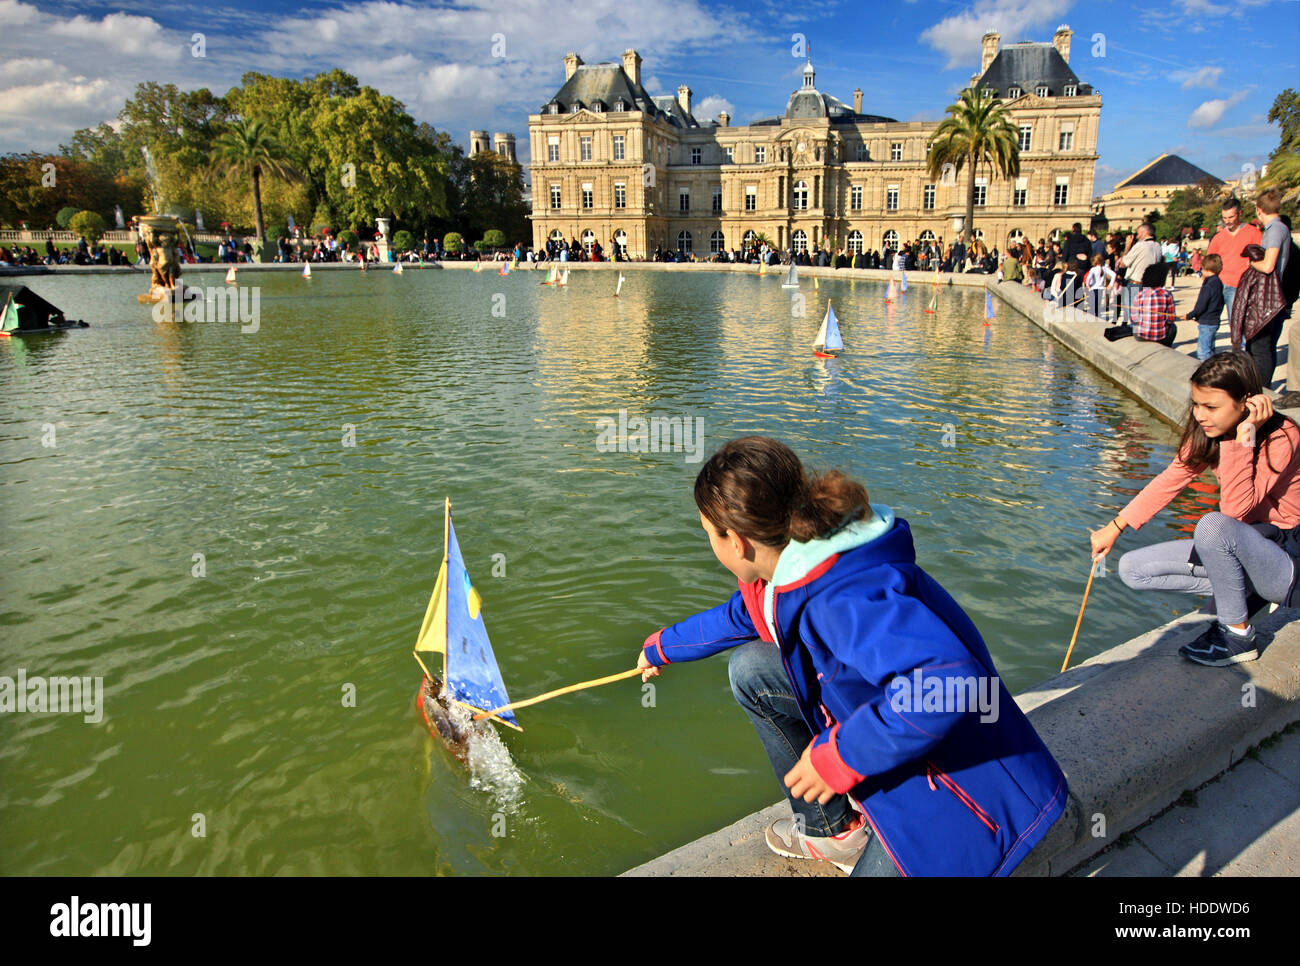 Retro wooden boats - toys in the pool in front of the Luxembourg Palace (Palais) in the Luxembourg Garden (Jardin), - Stock Image